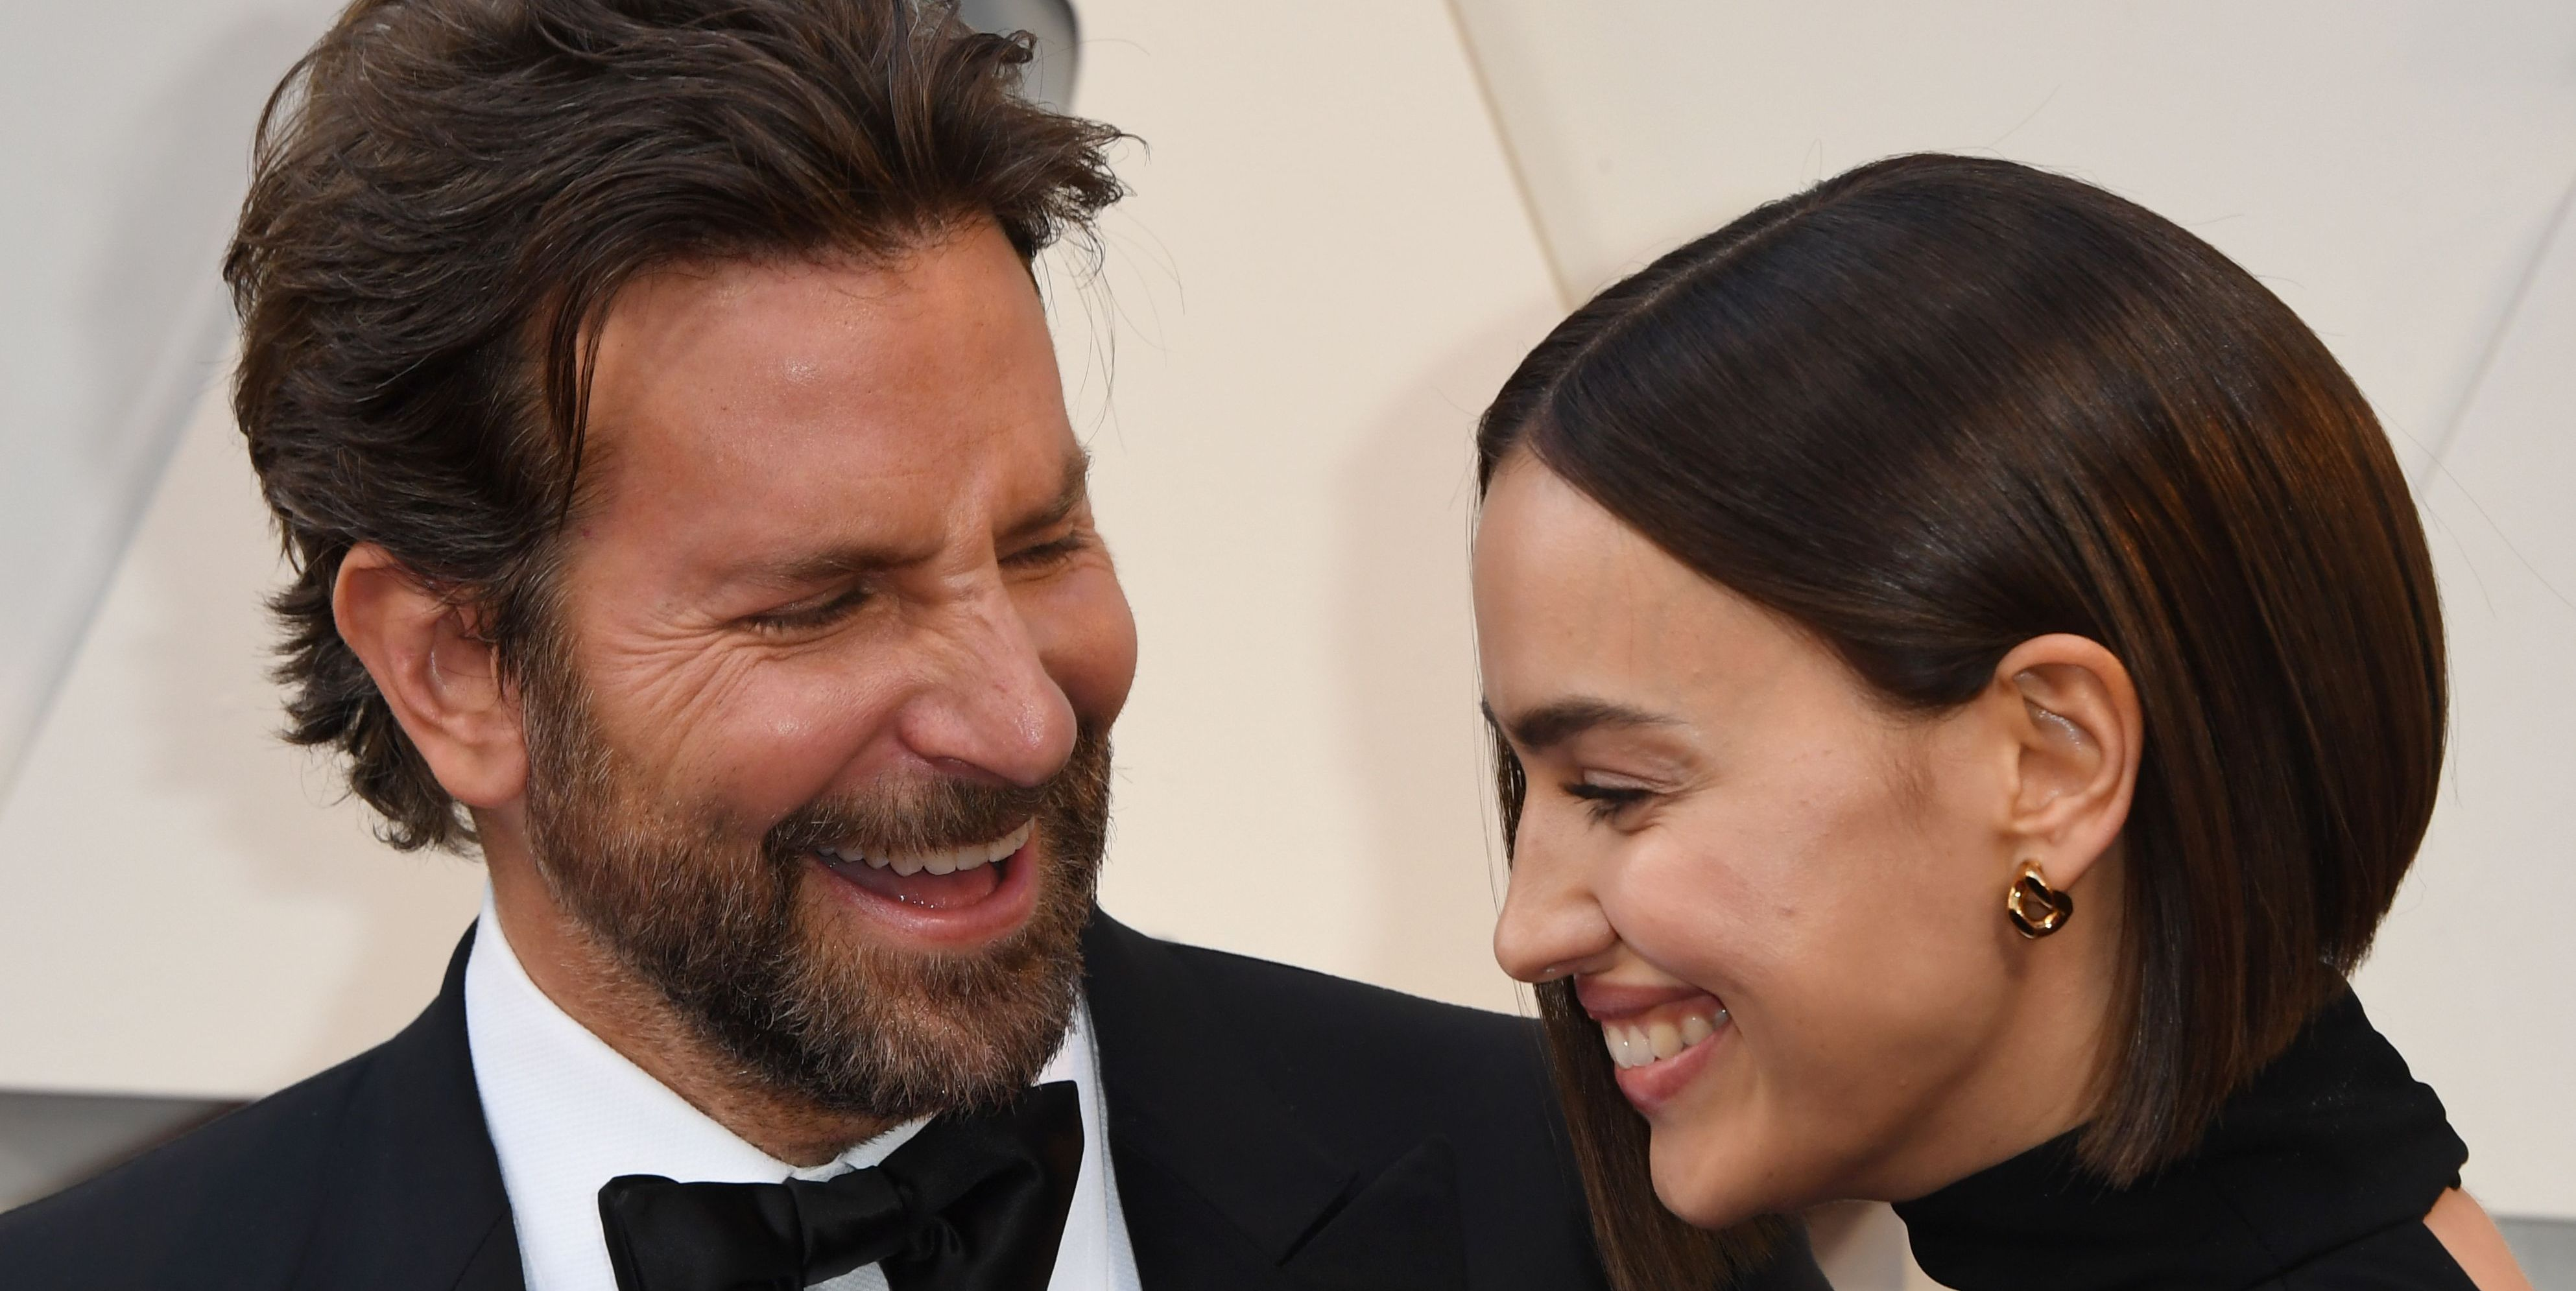 Oscars 2019: The Cutest Celebrity Couples On The Red Carpet